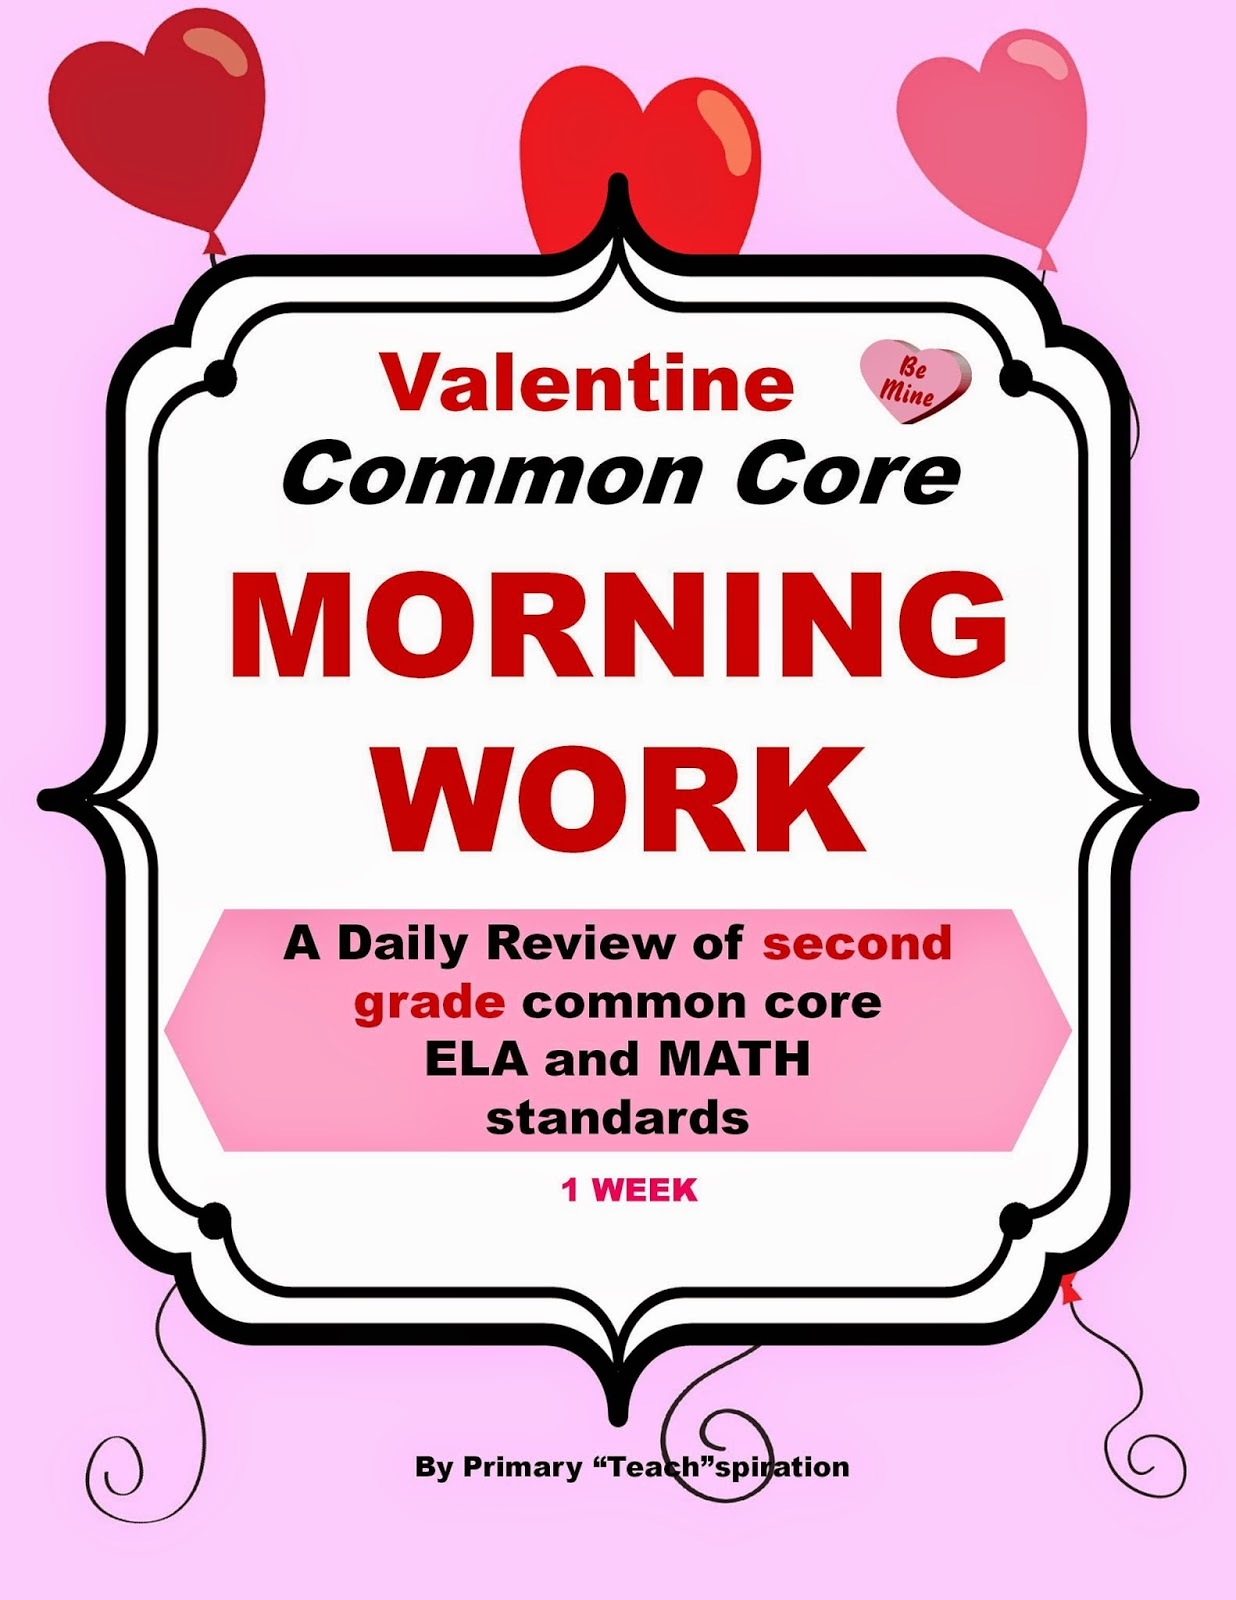 Classroom Freebies Too A Week Of Valentine Common Core